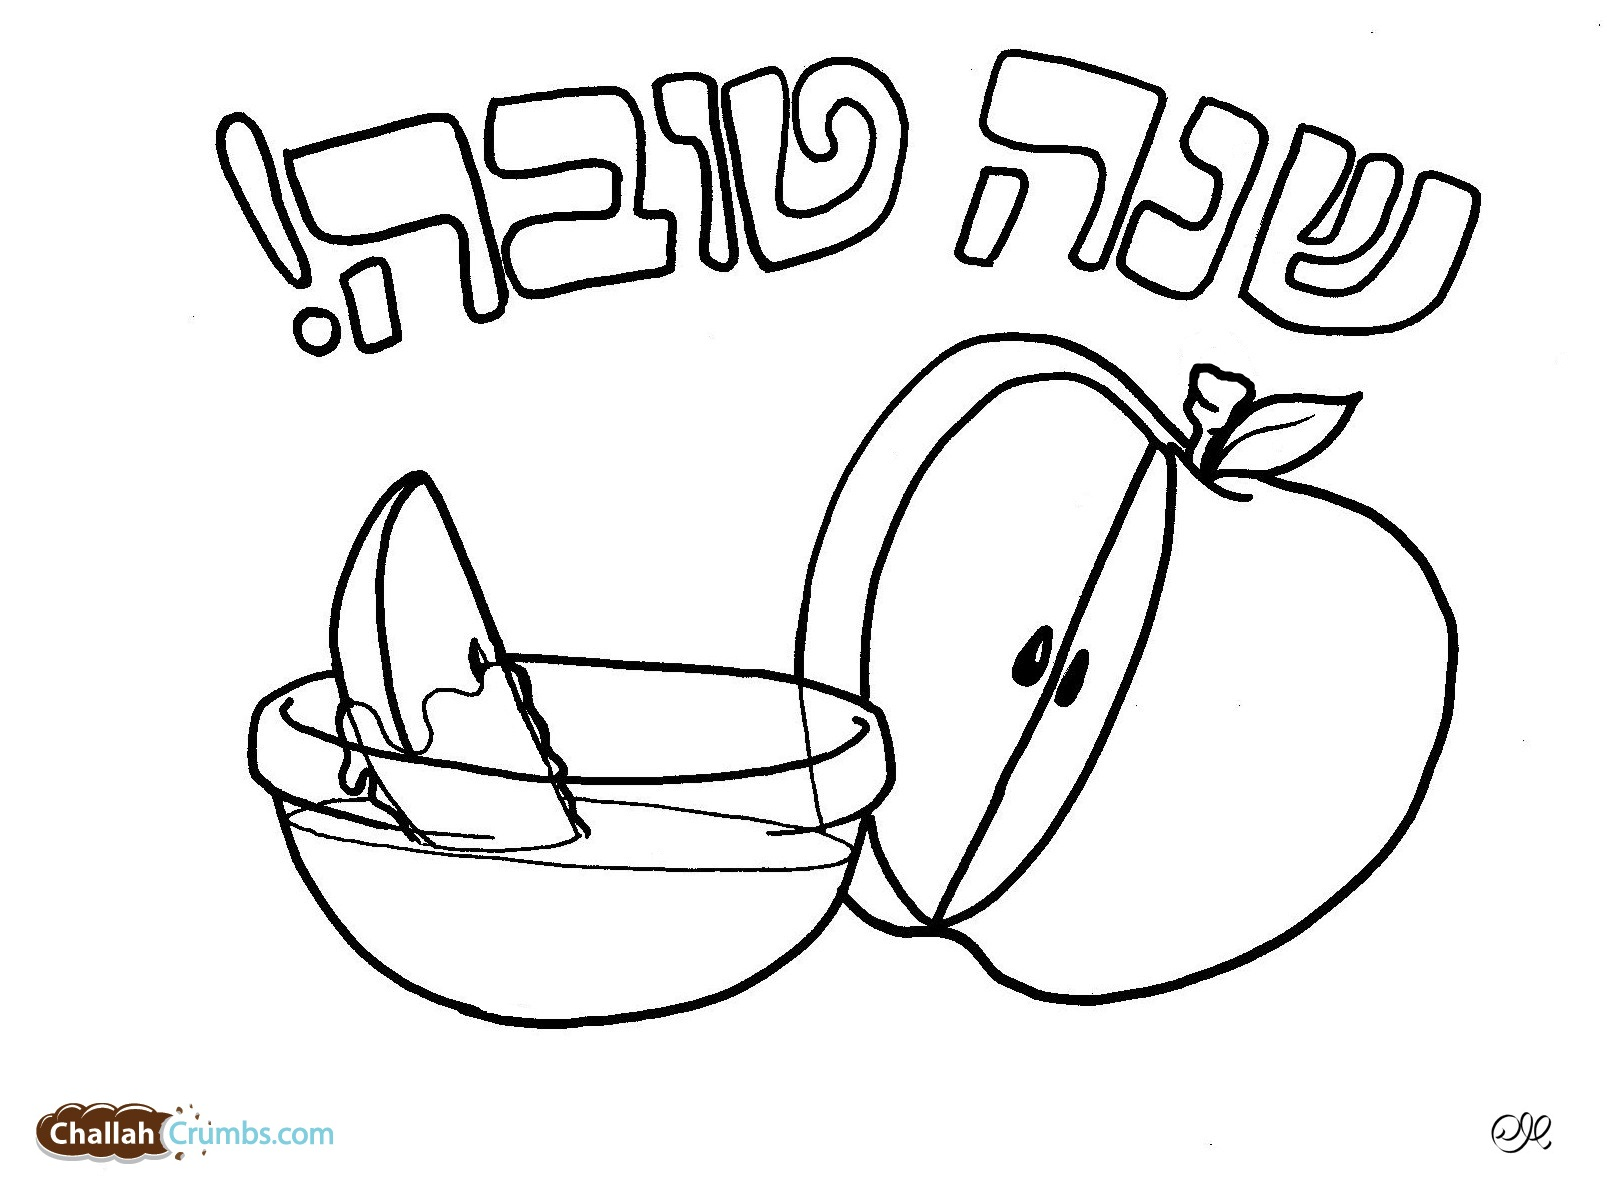 rosh hashanah coloring pages - photo#5